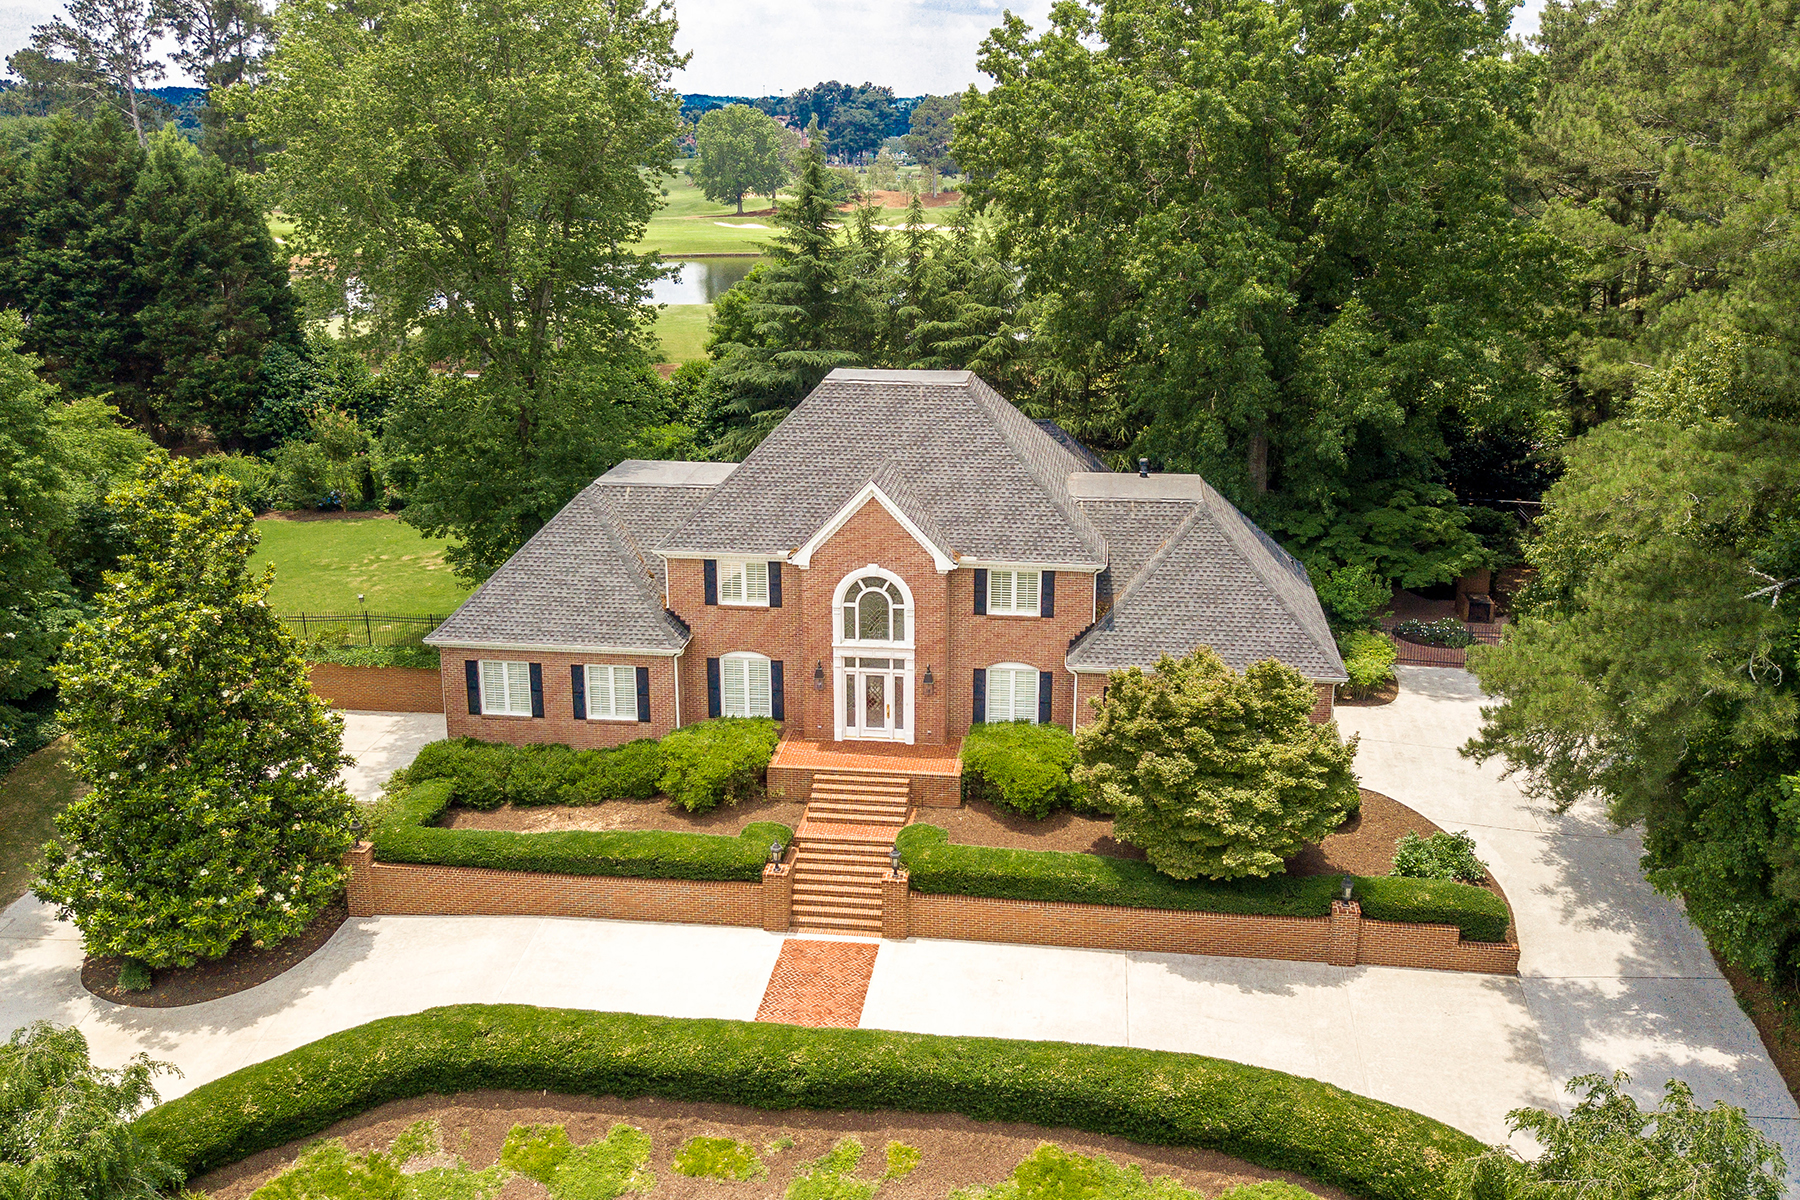 Single Family Home for Sale at Timeless Estate Home On The Atlanta Athletic Club Golf Course 9425 Riverclub Parkway Johns Creek, Georgia 30097 United States